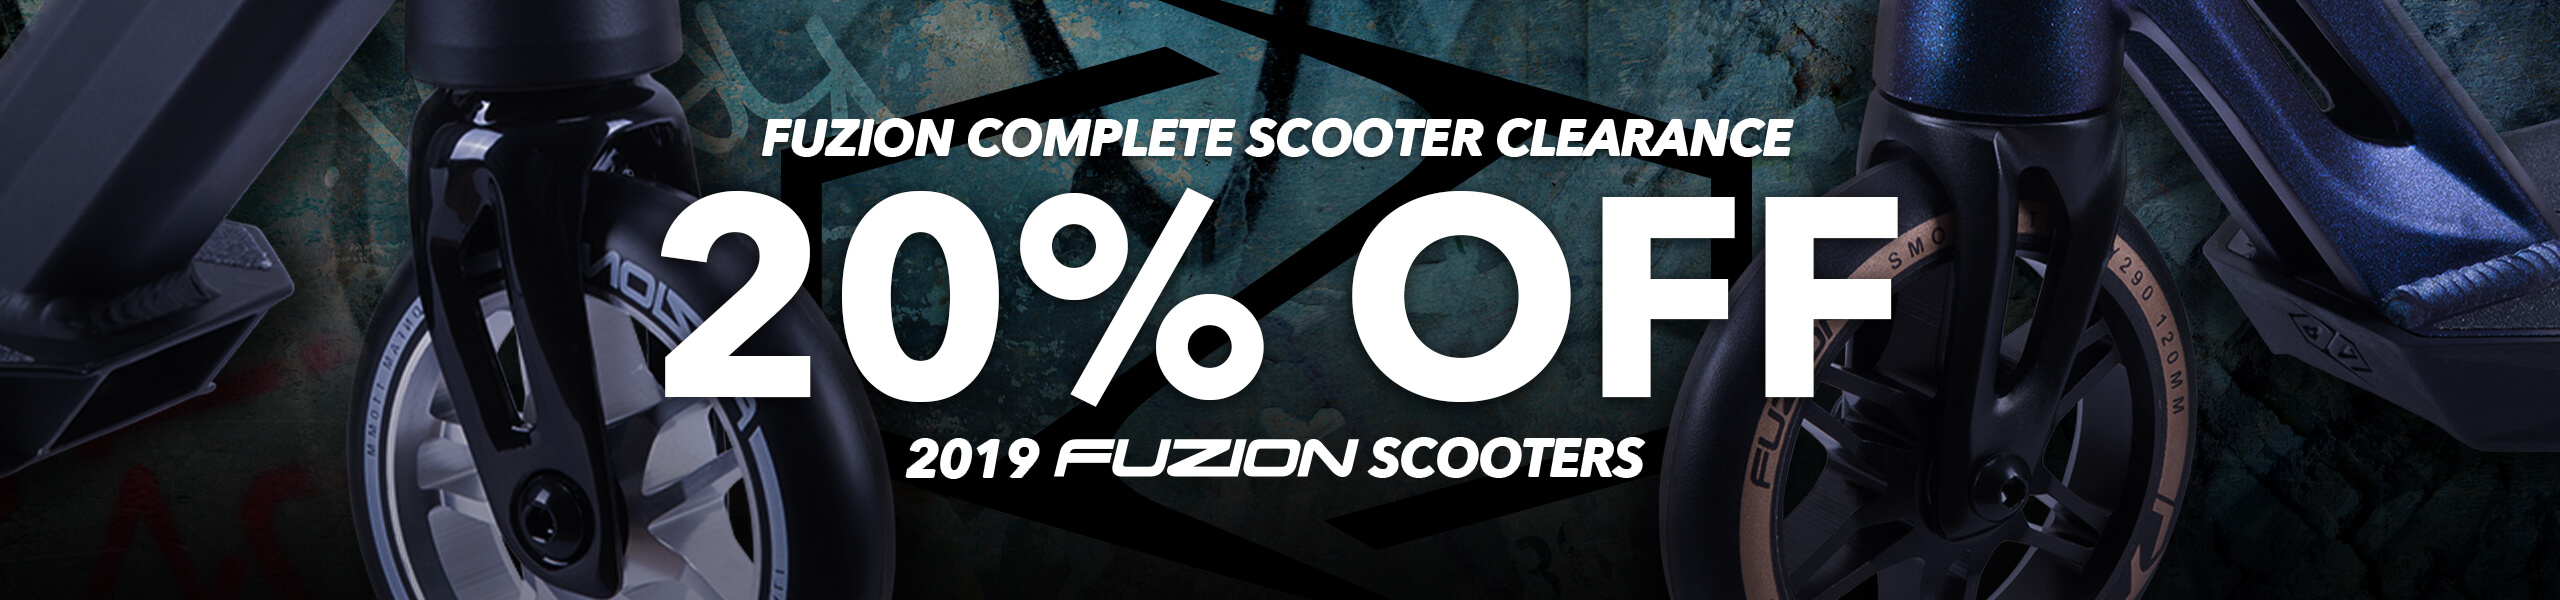 20% OFF 2019 Fuzion Completes .jpg